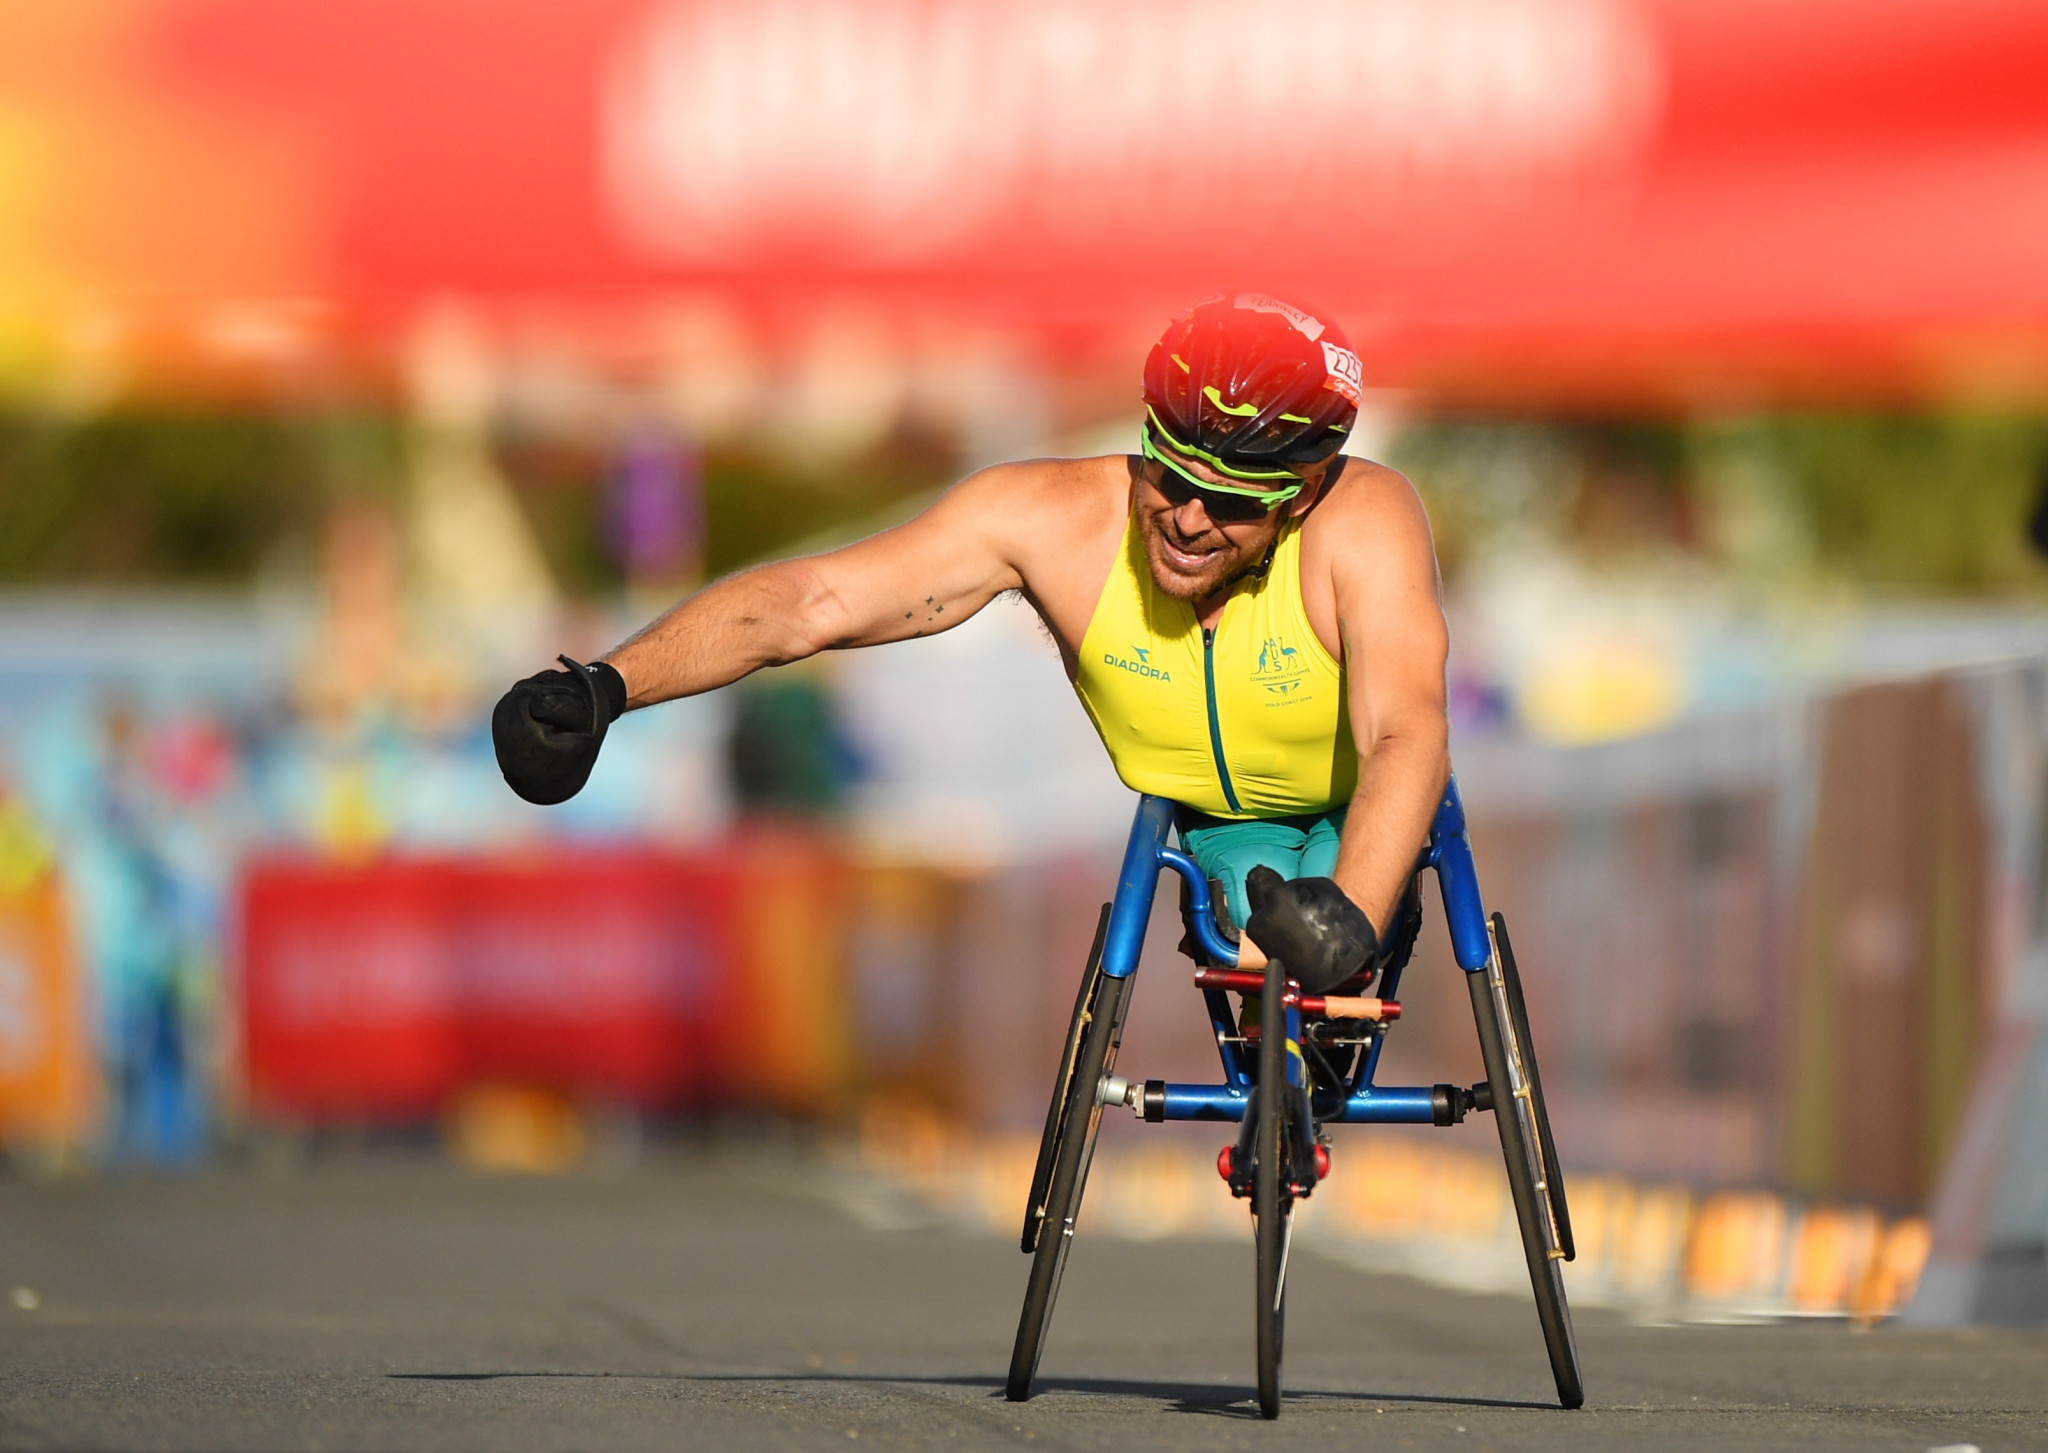 Fearnley becomes first Para-athlete to win prestigious Australian award